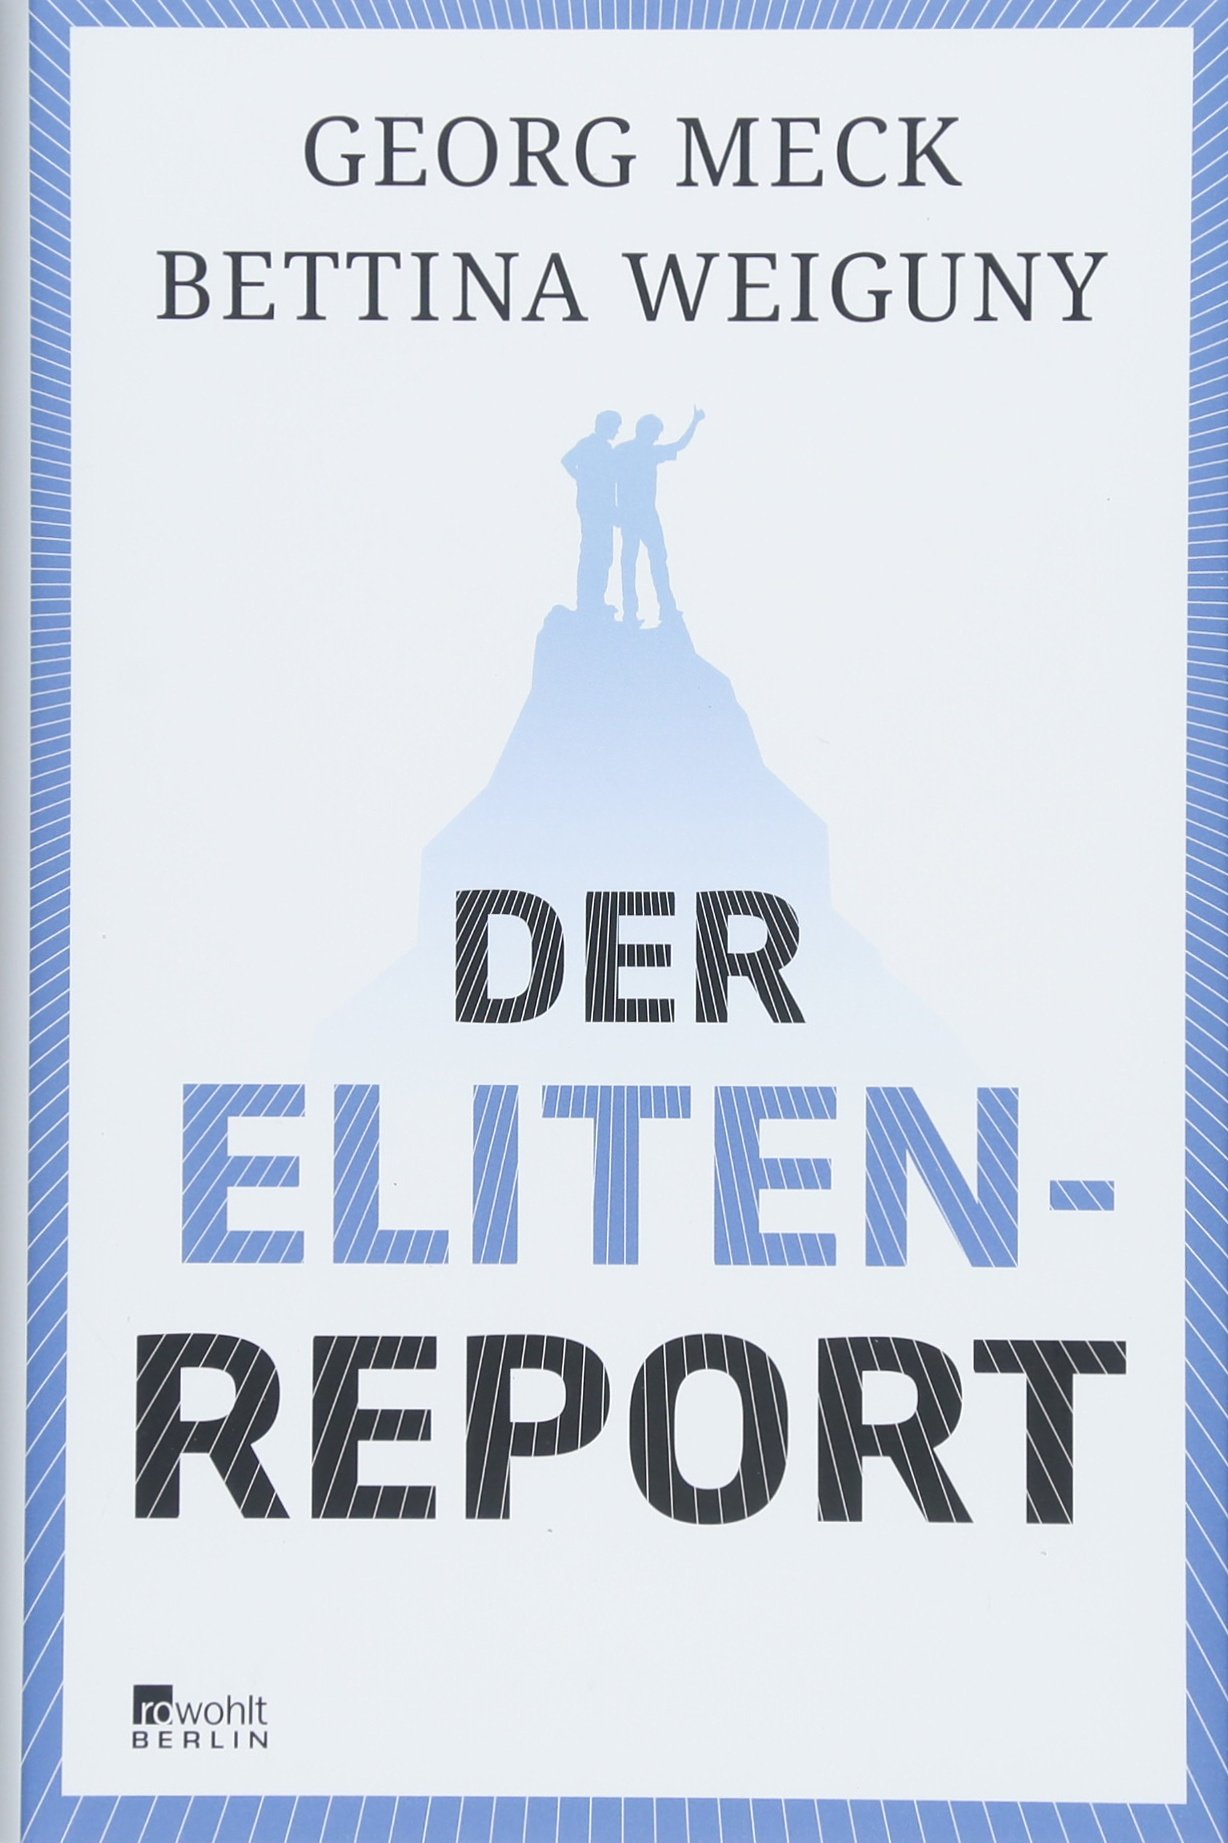 Der Elitenreport